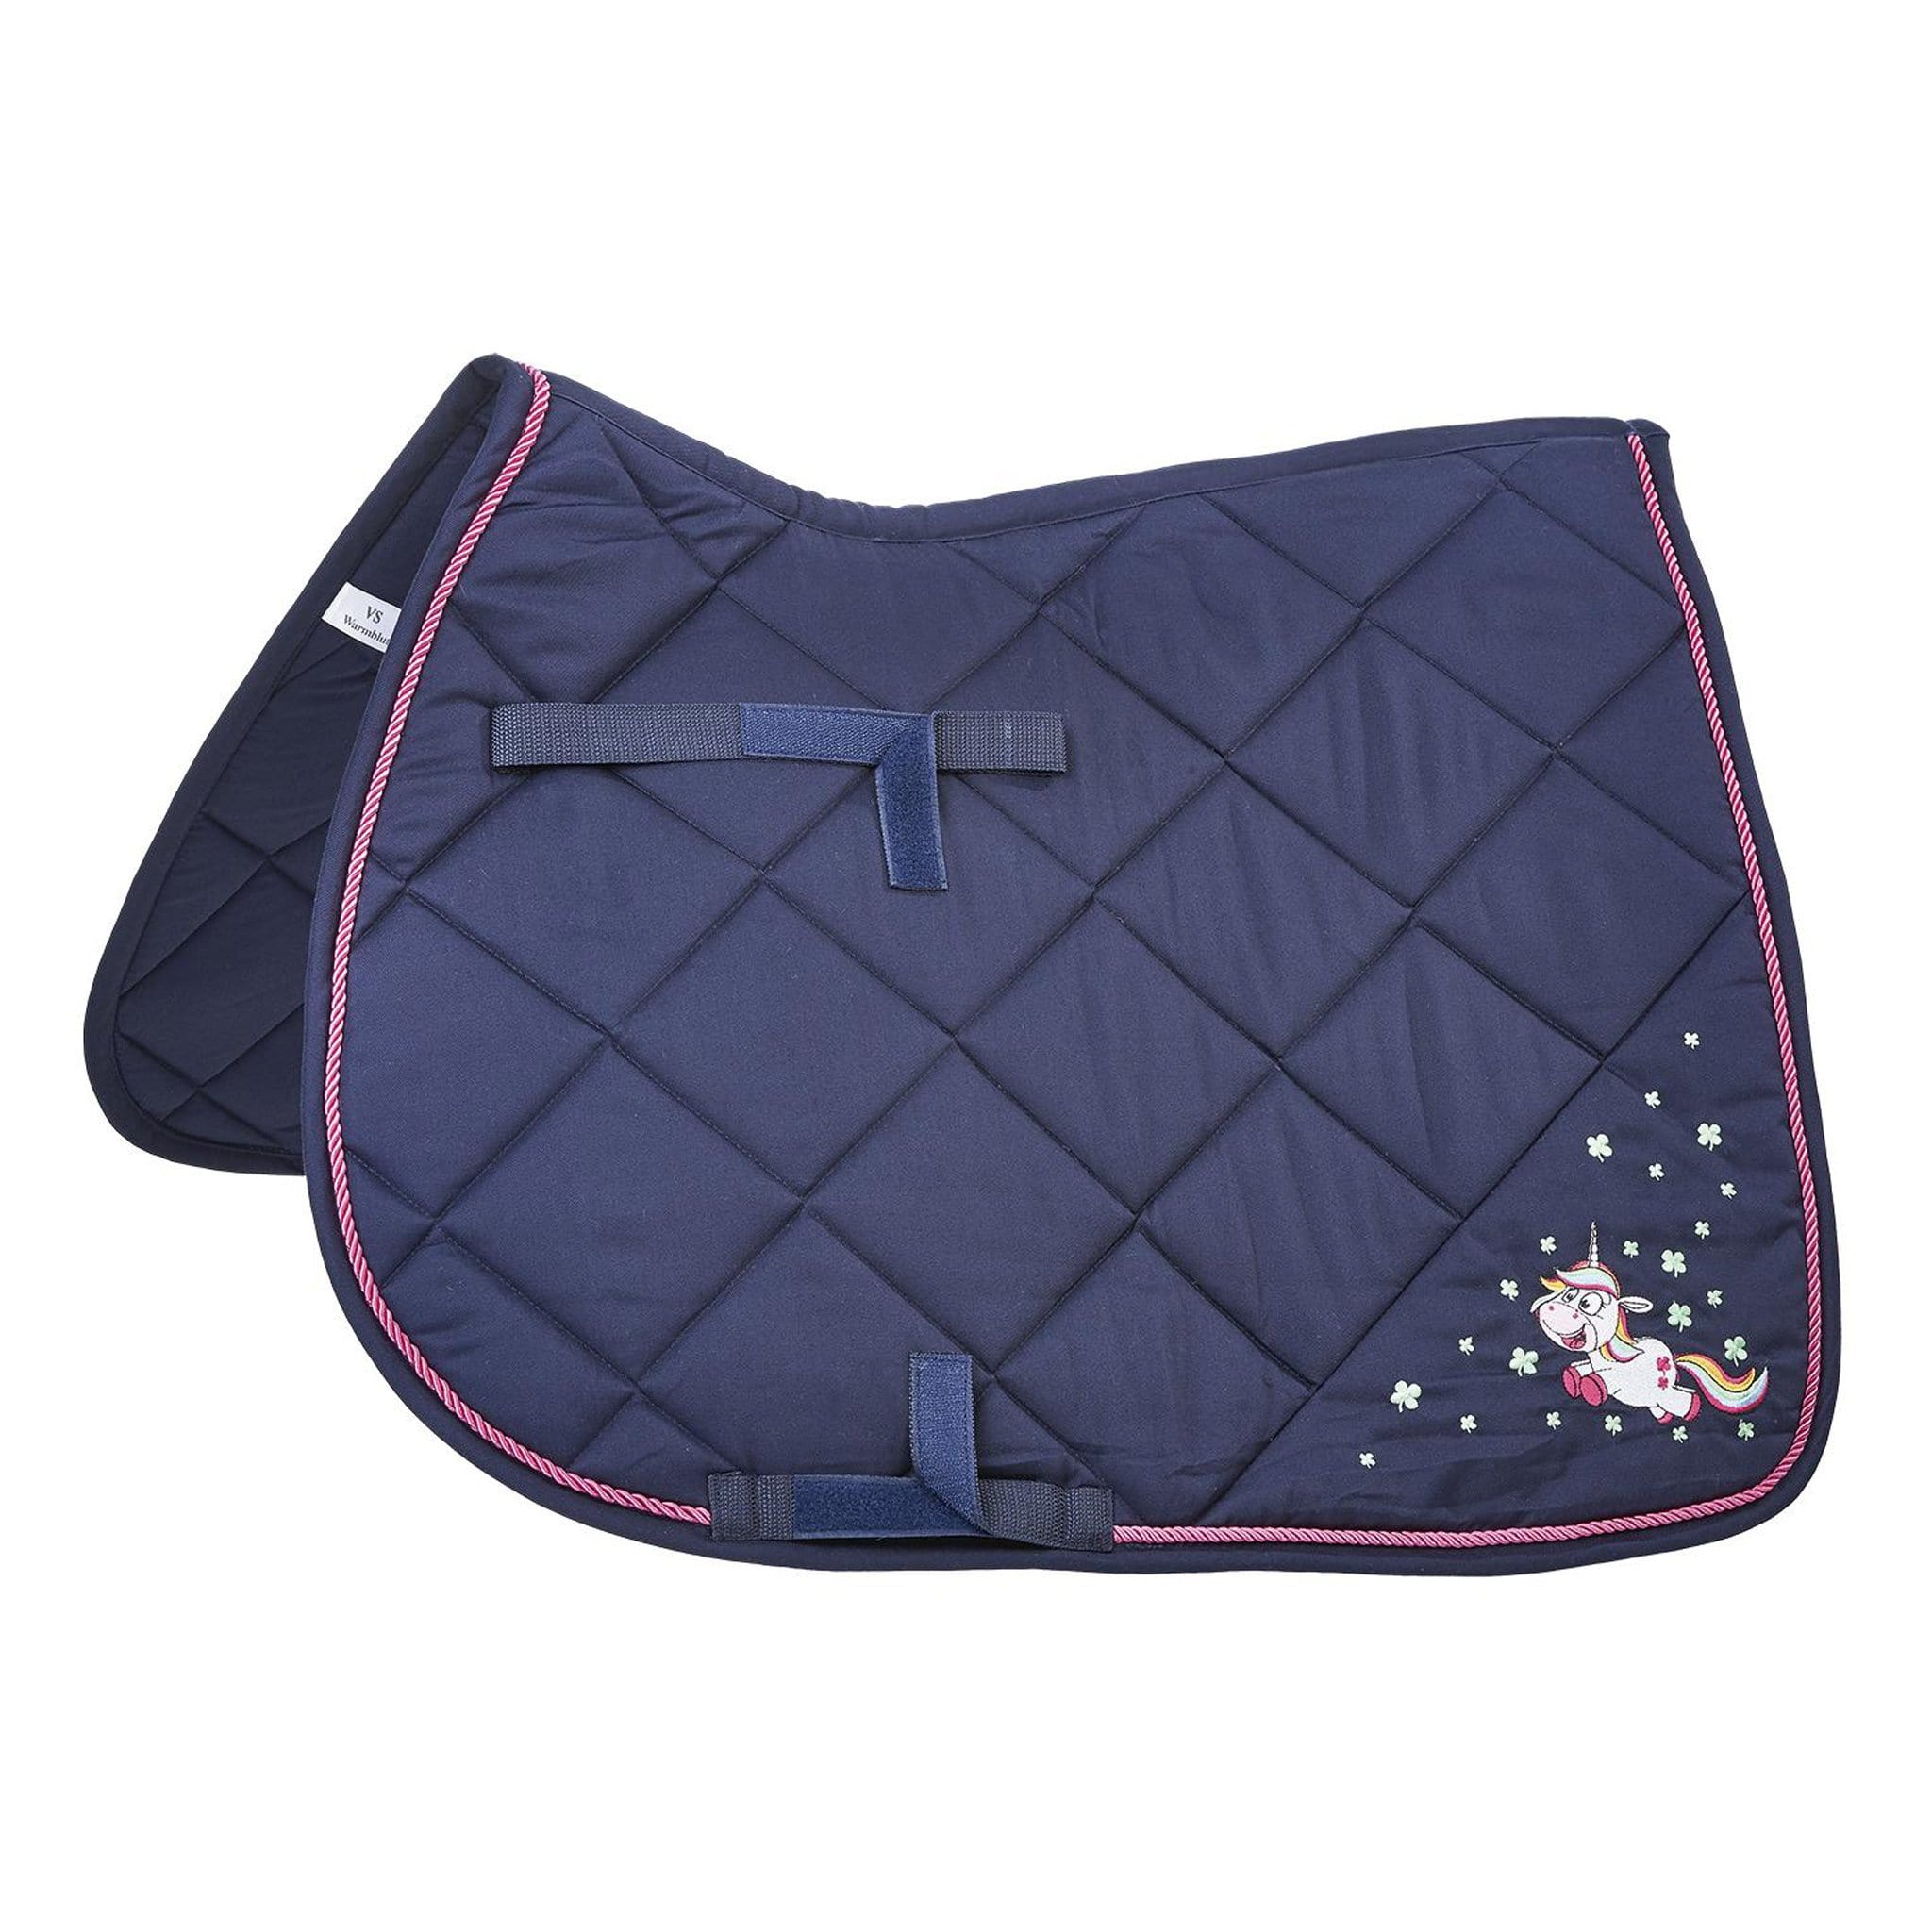 Busse Unicorn II Saddle Cloth 116407 Navy